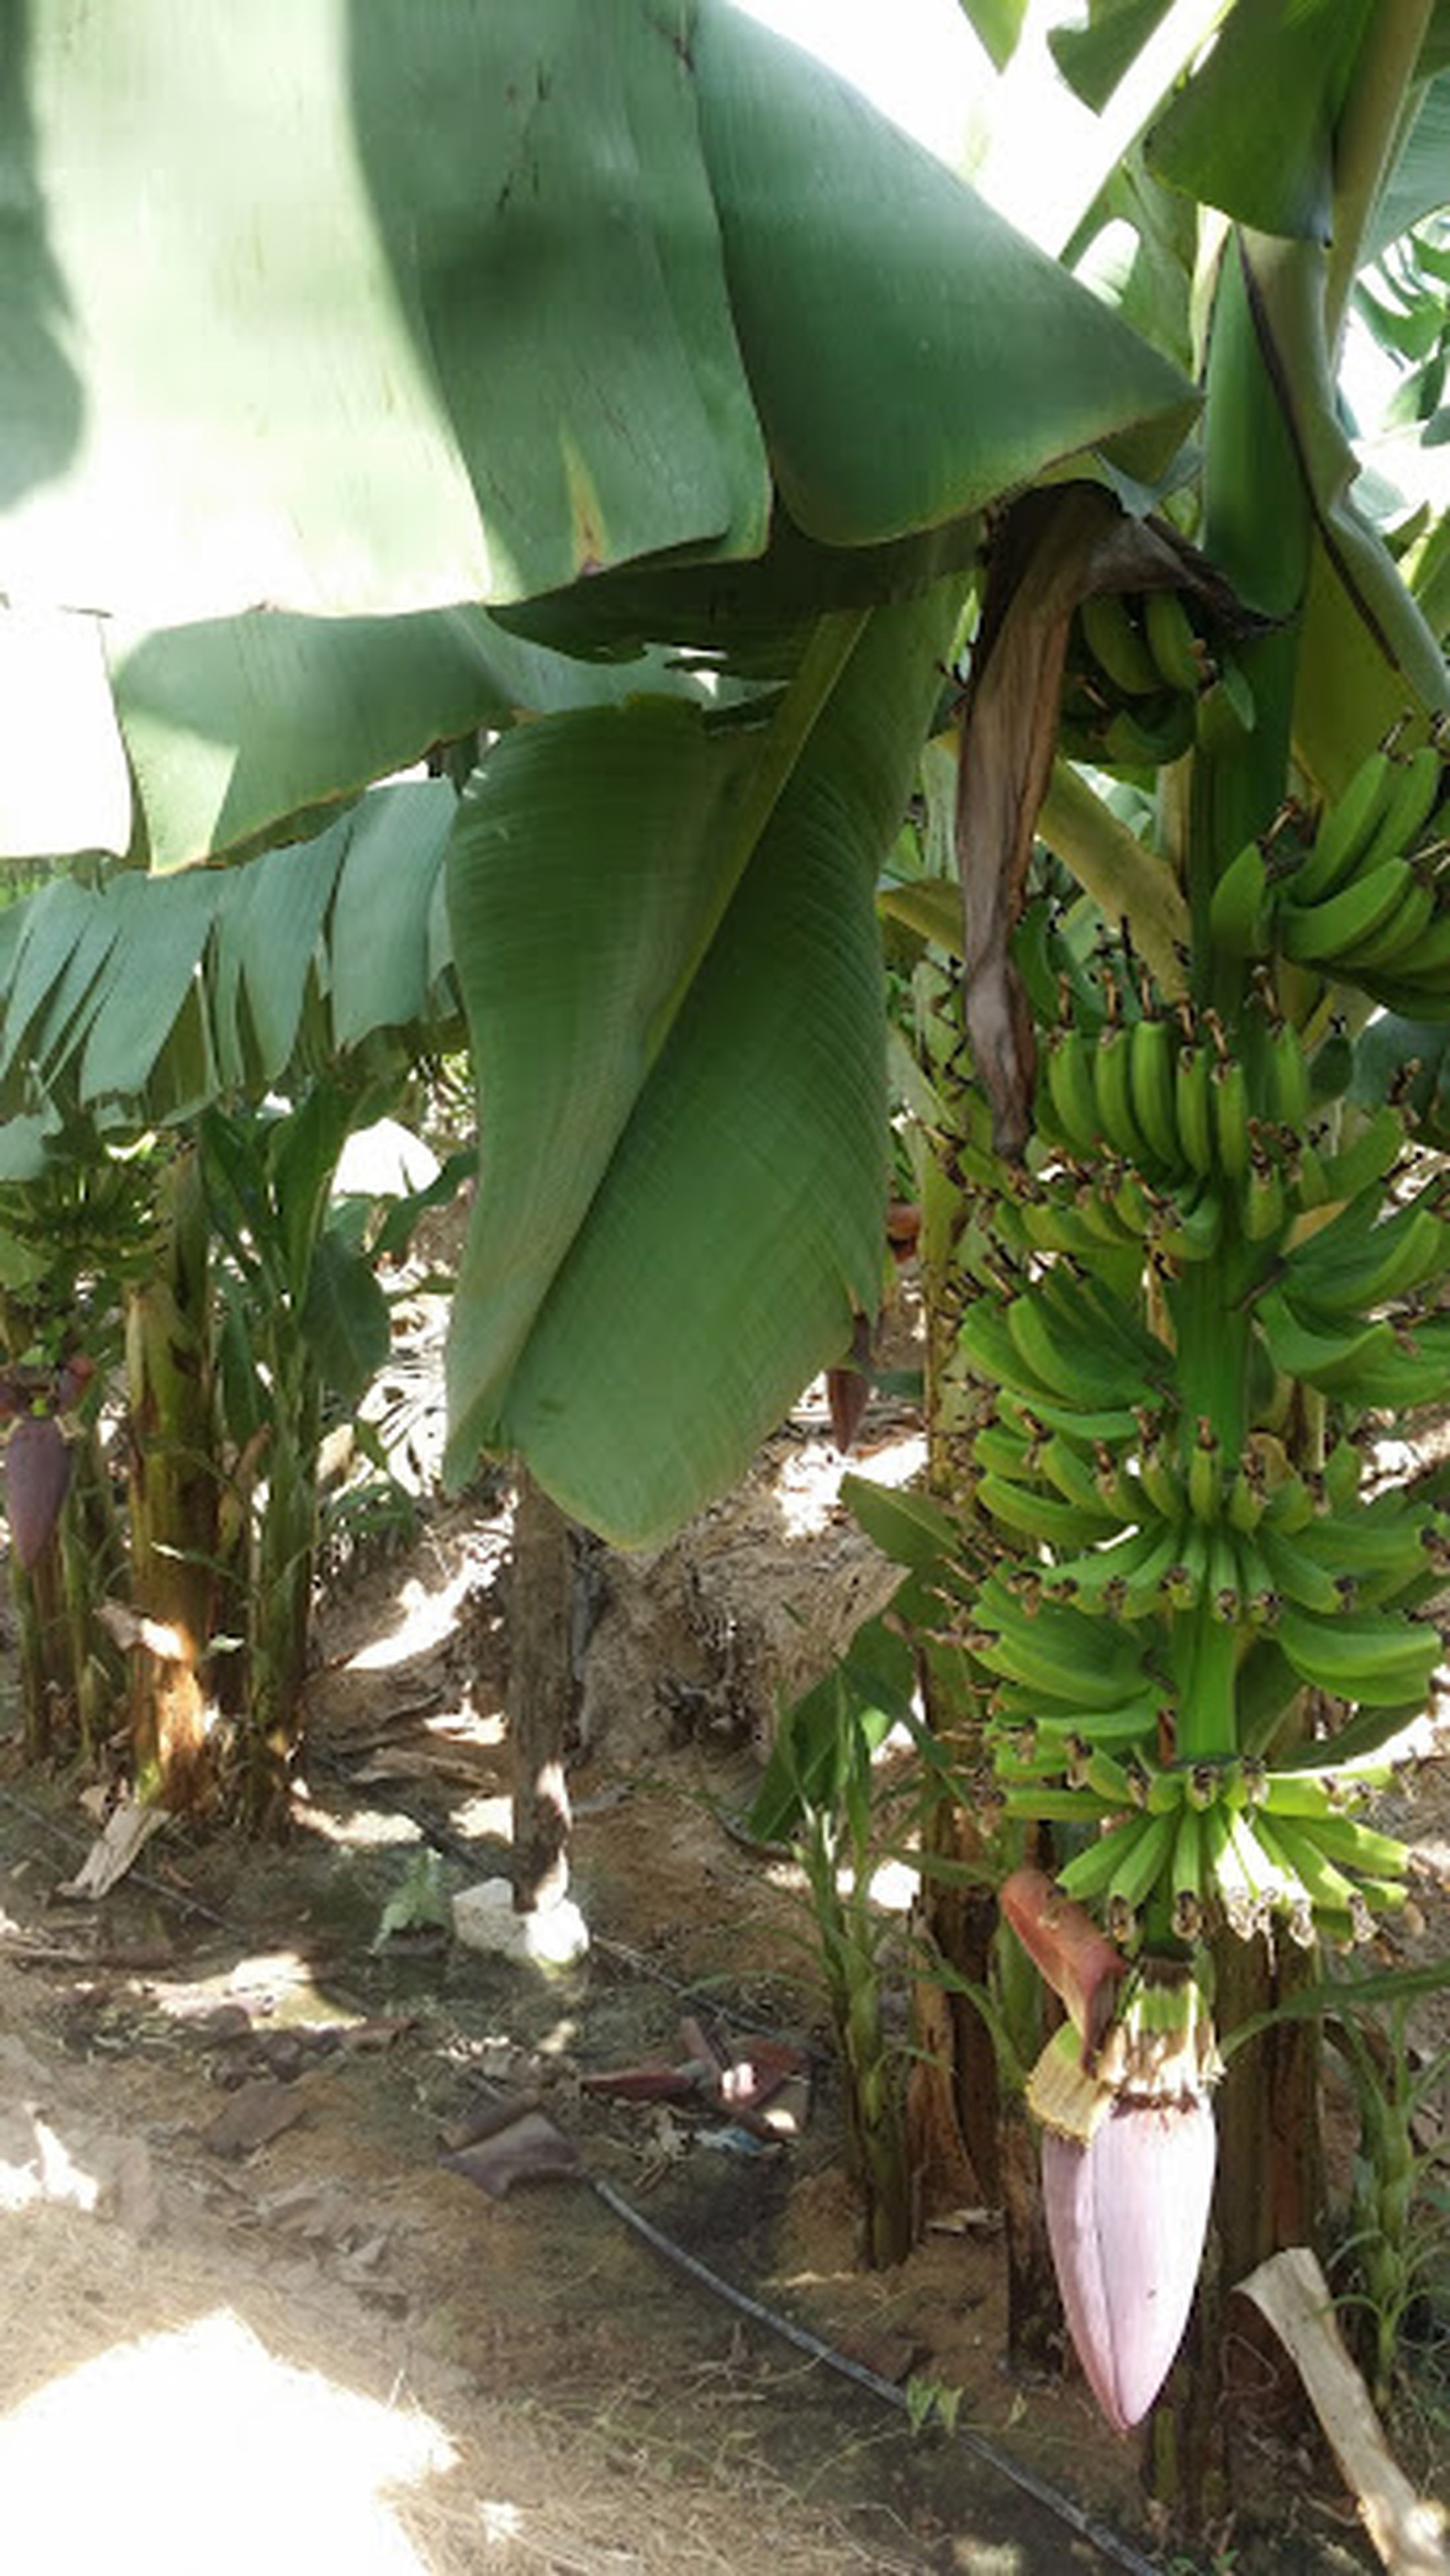 growth, leaf, green color, no people, nature, agriculture, banana tree, food and drink, plant, close-up, freshness, food, outdoors, day